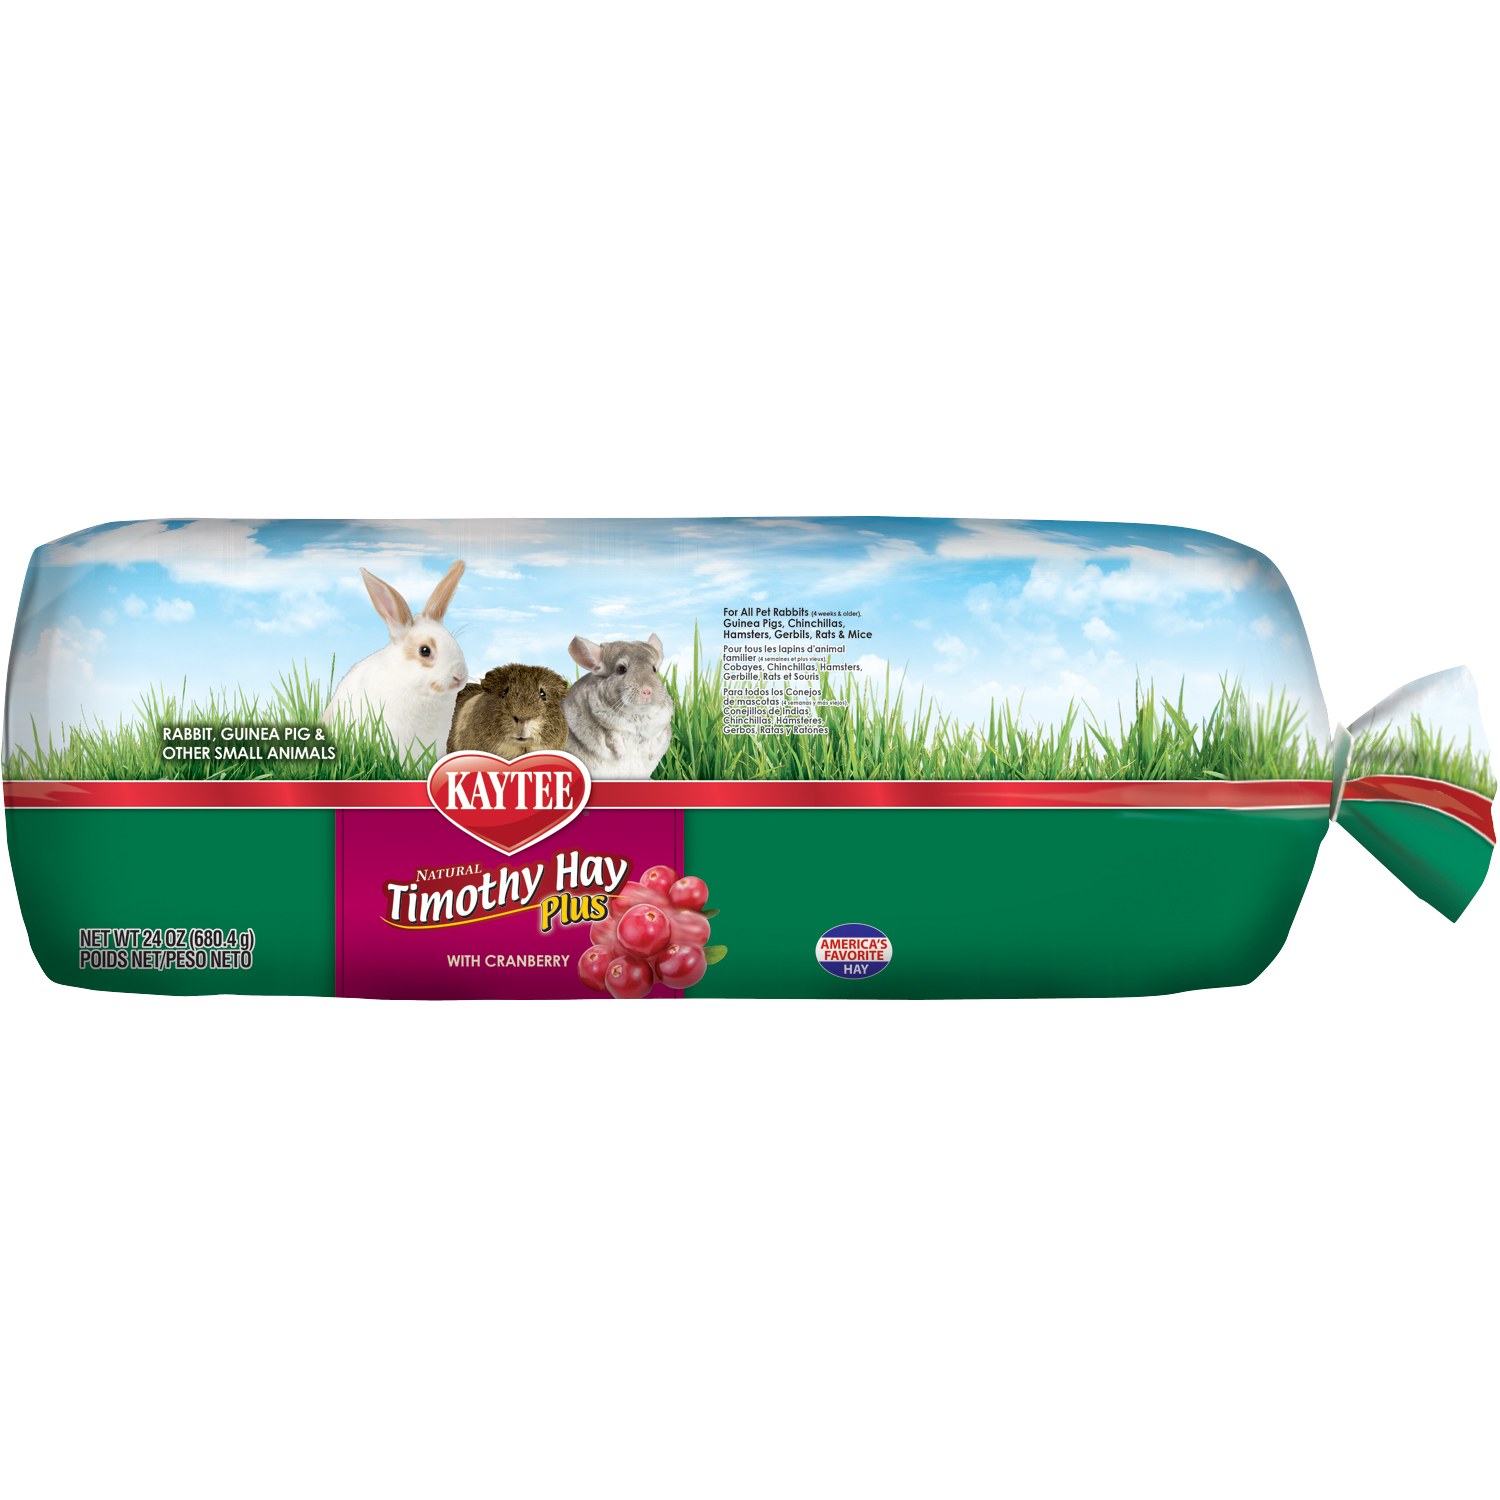 All Natural Timothy Hay with Cranberry